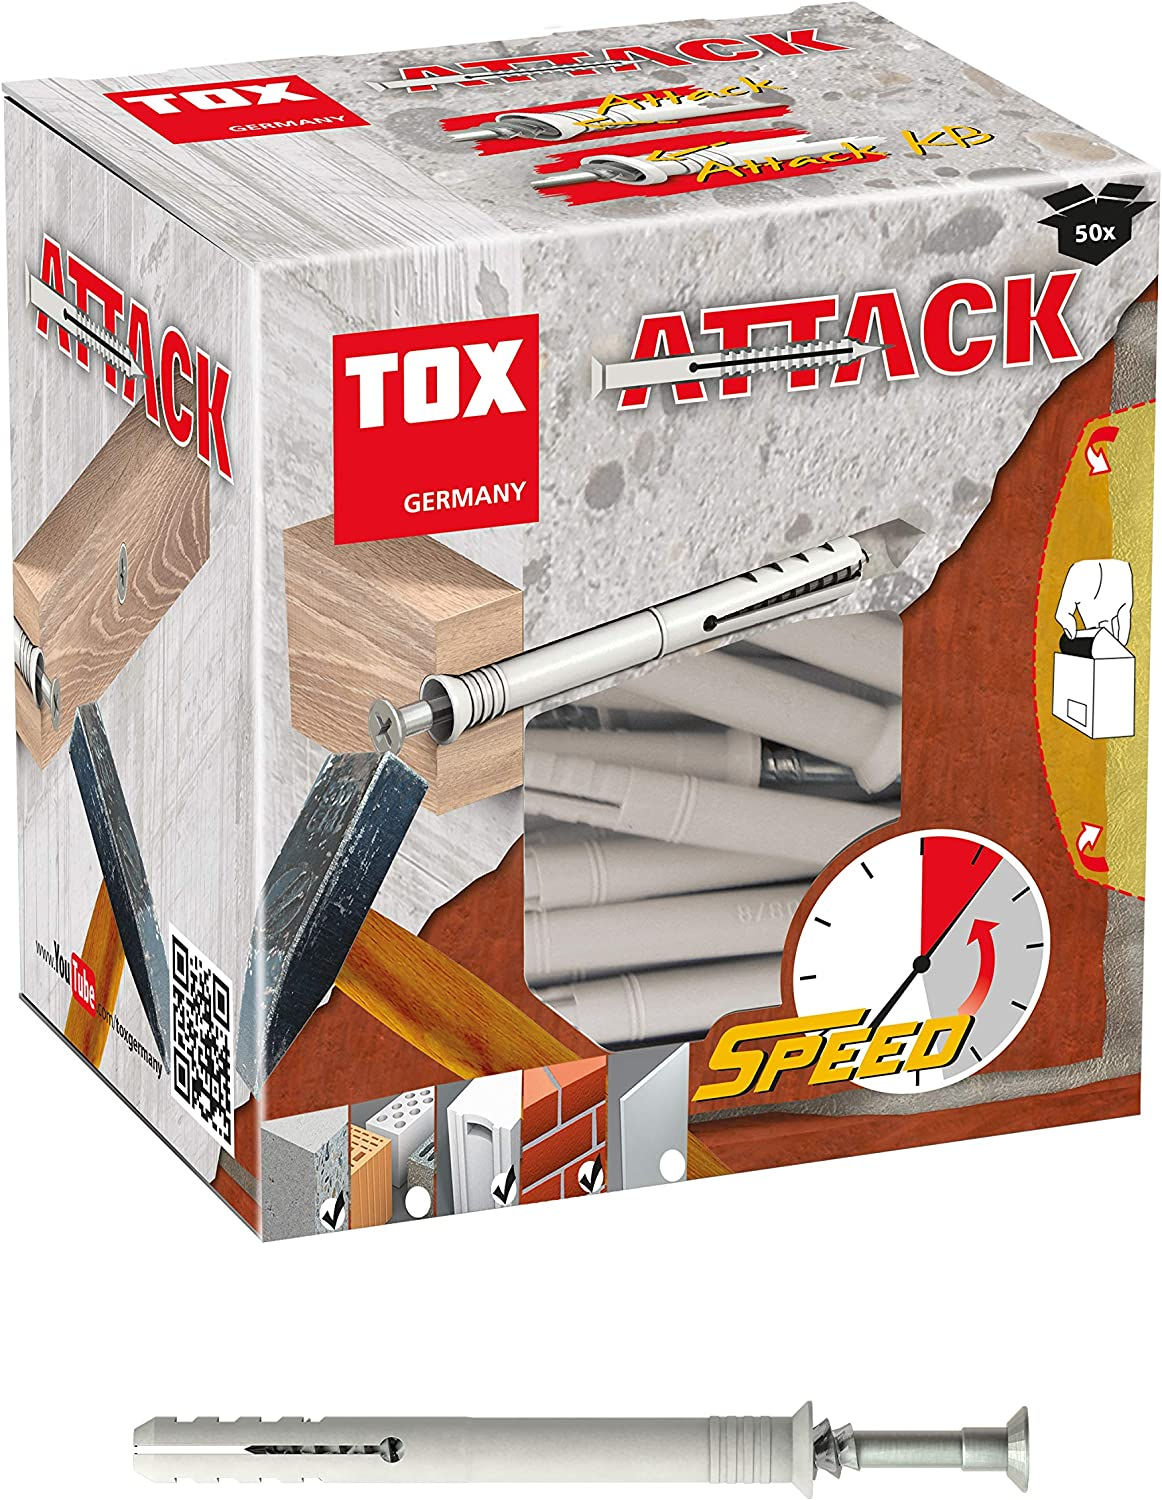 TOX Nail Many Free shipping anywhere in the nation popular brands Wall Plug Attack 8x120 Pieces 50 017102271 mm